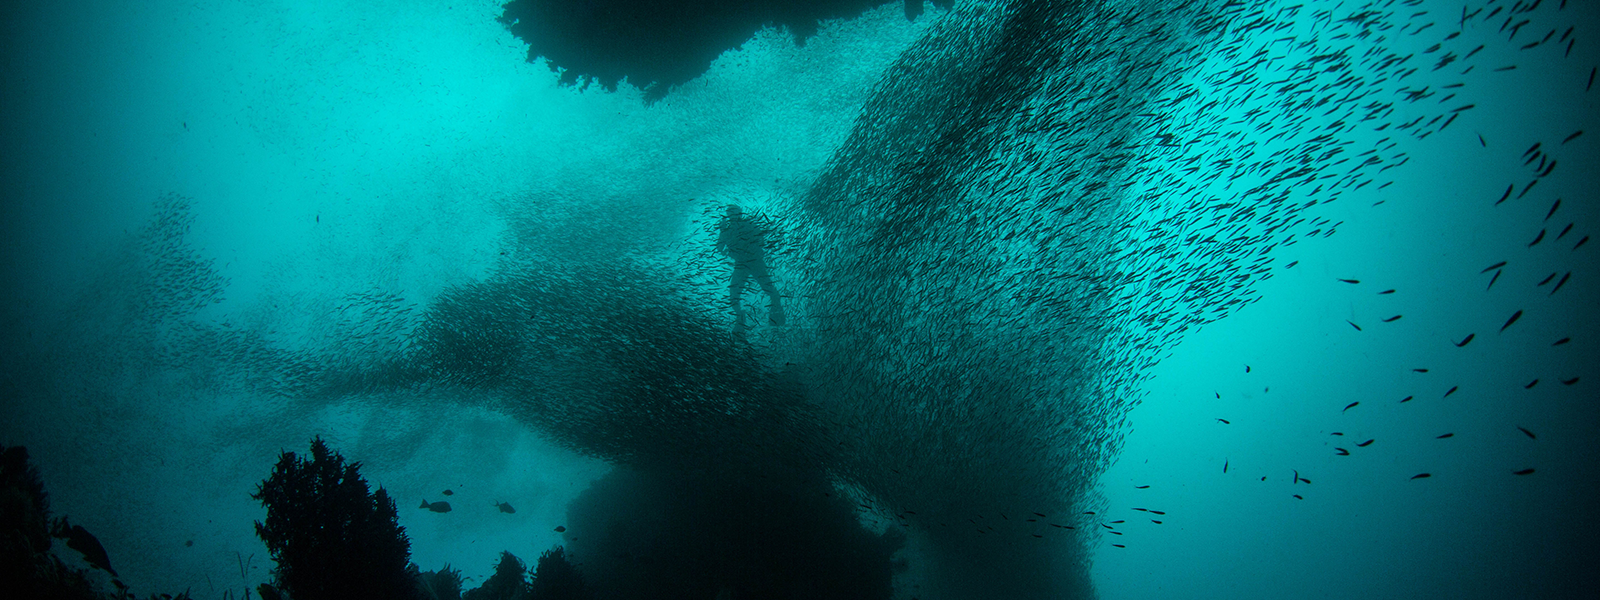 Underwater photo of a school of fish and diver